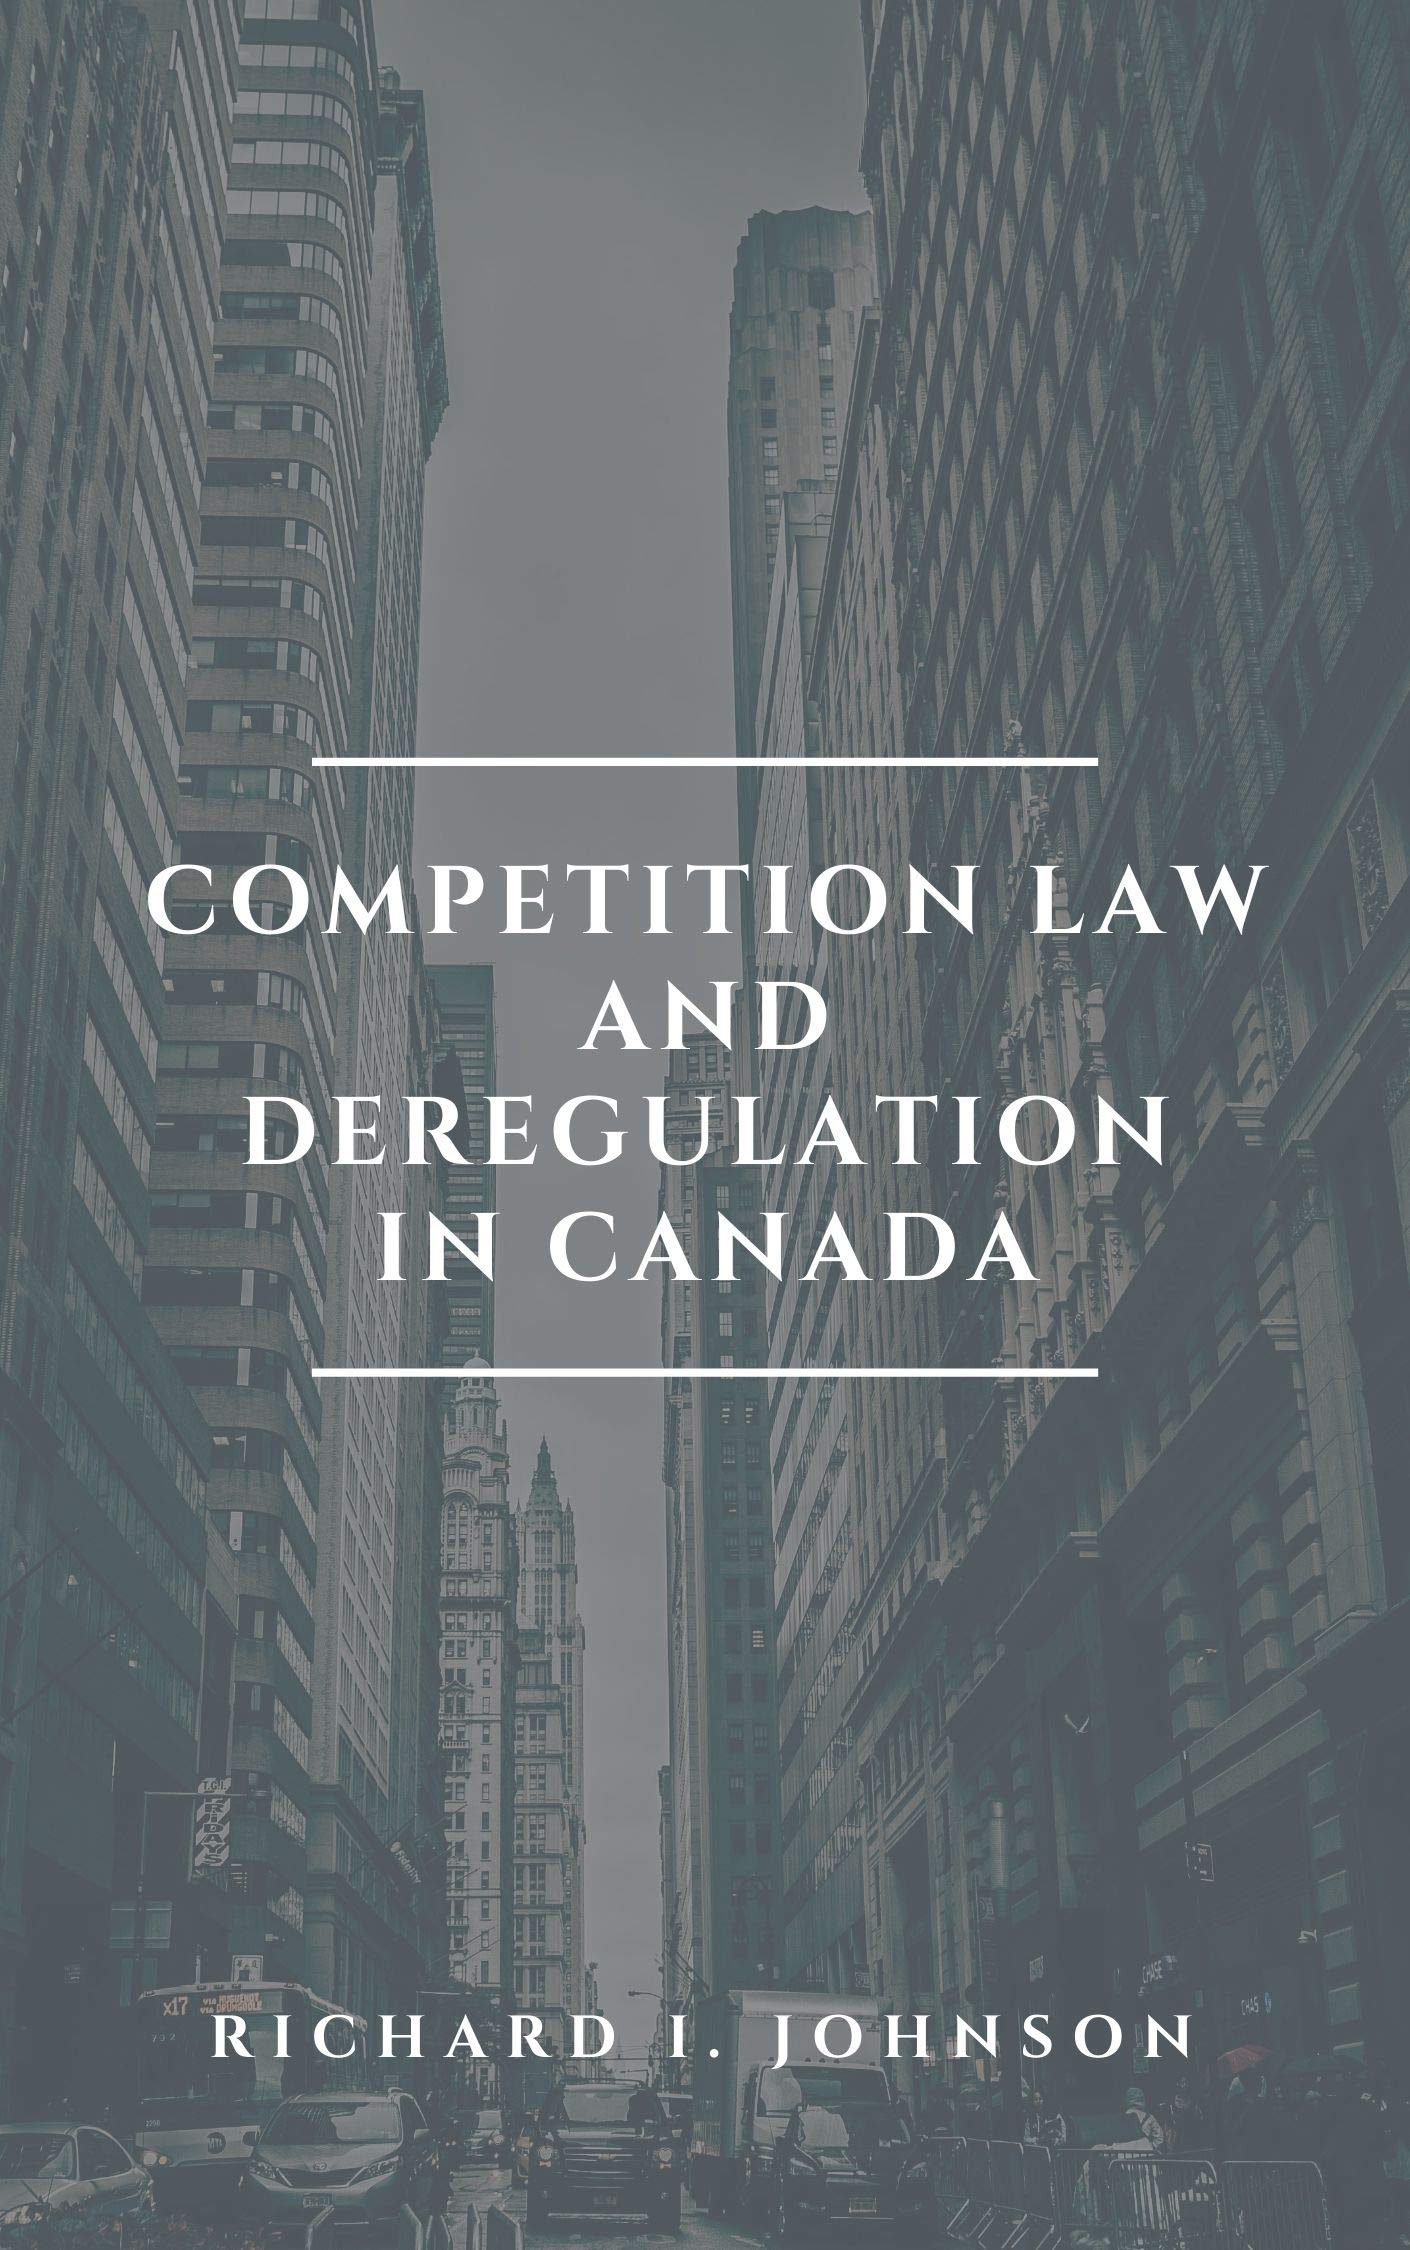 Competition Law and Deregulation in Canada